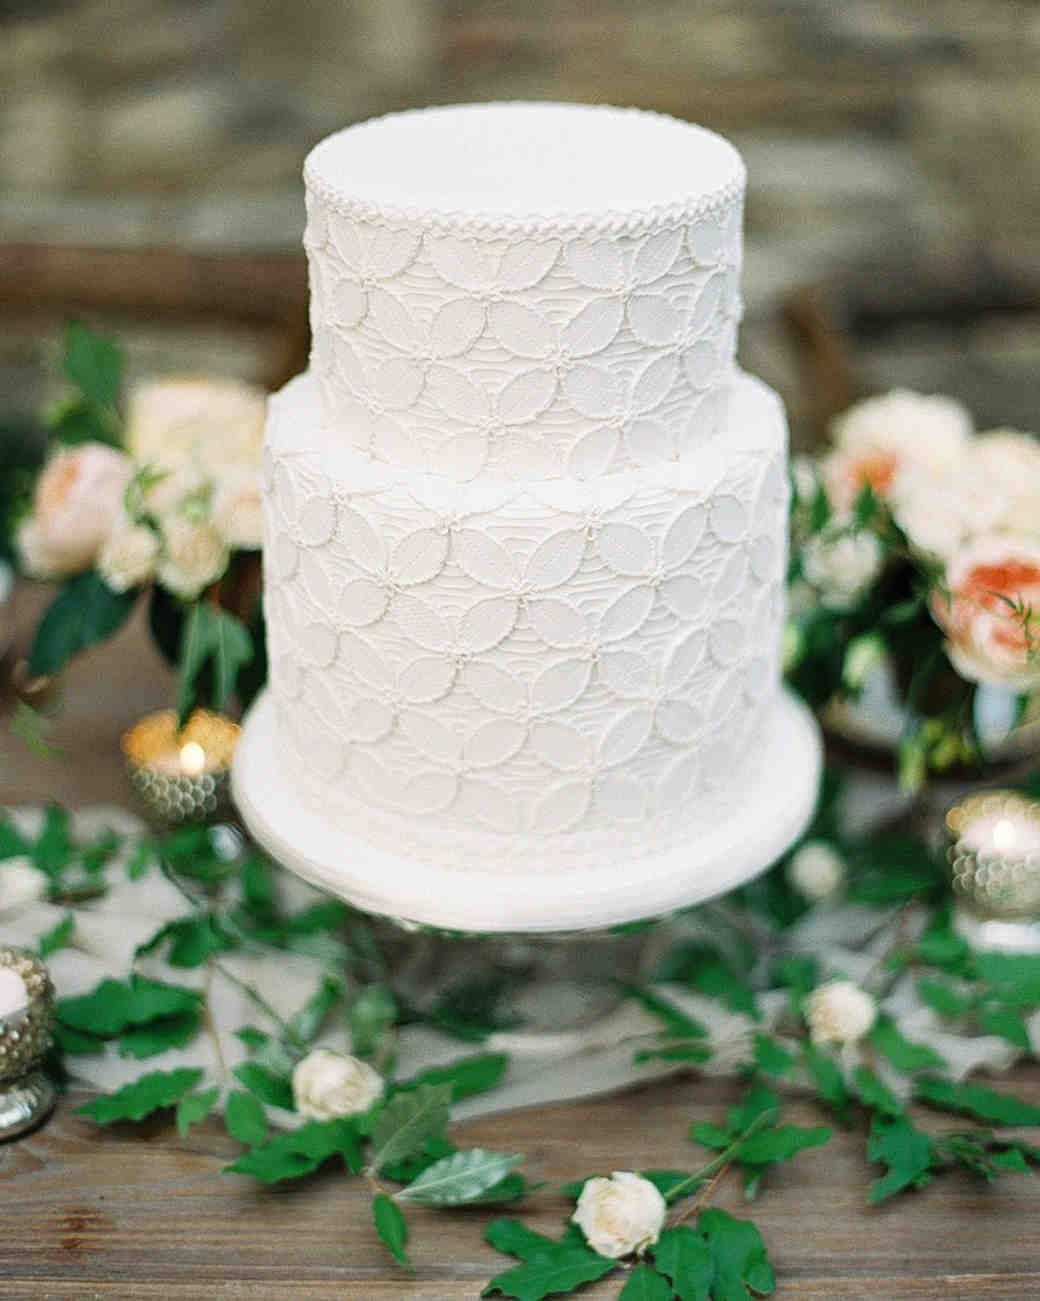 wedding cake design ideas thatull wow your guests wedding cake